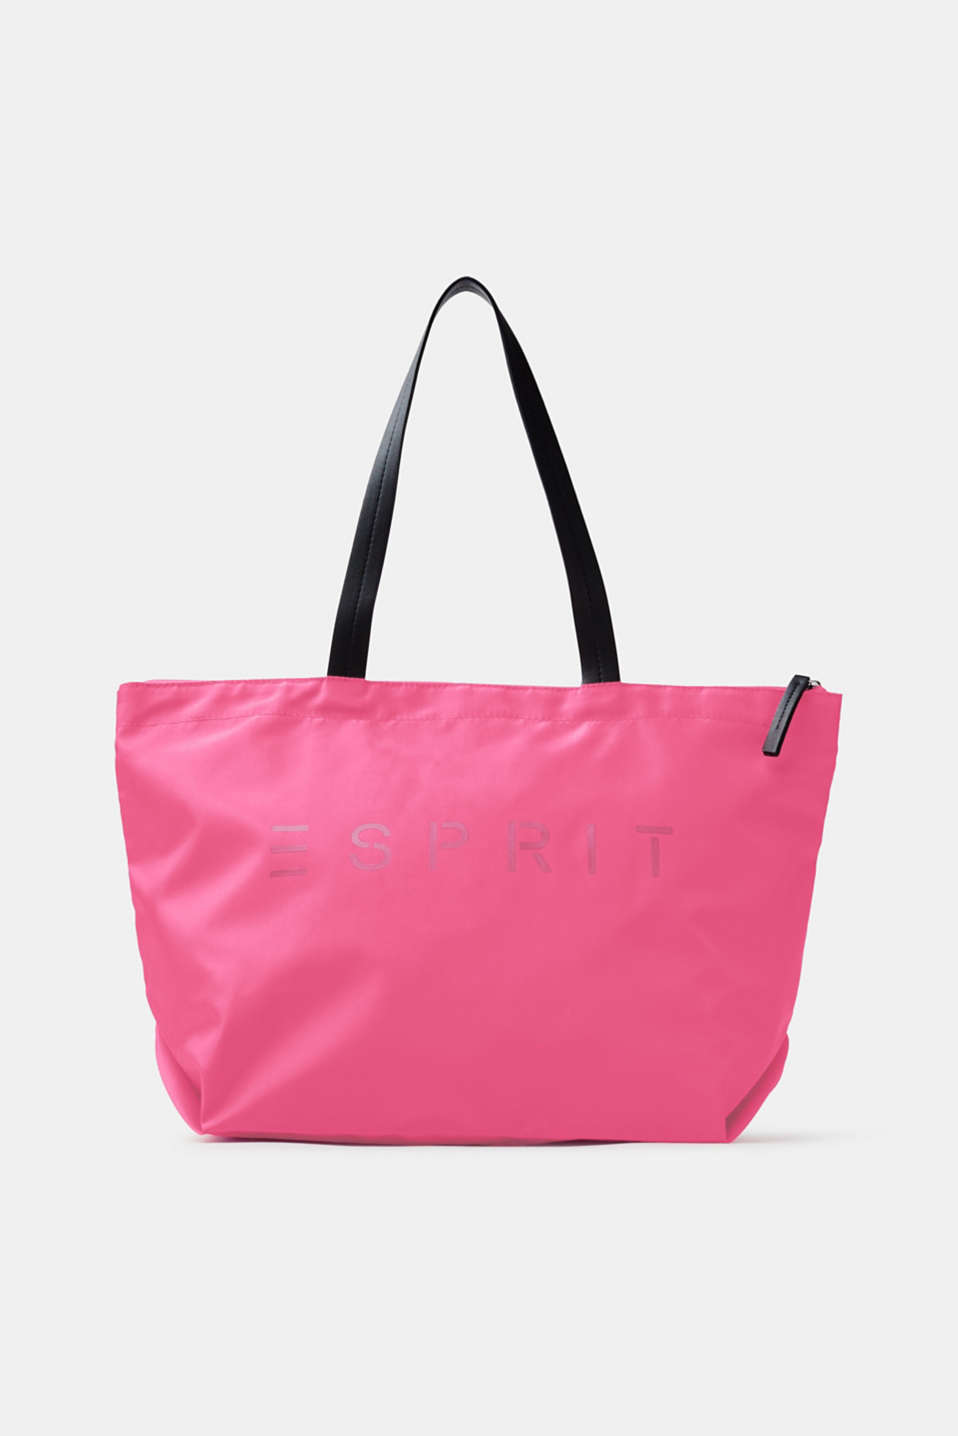 Esprit - Logo-shopperi nailonia